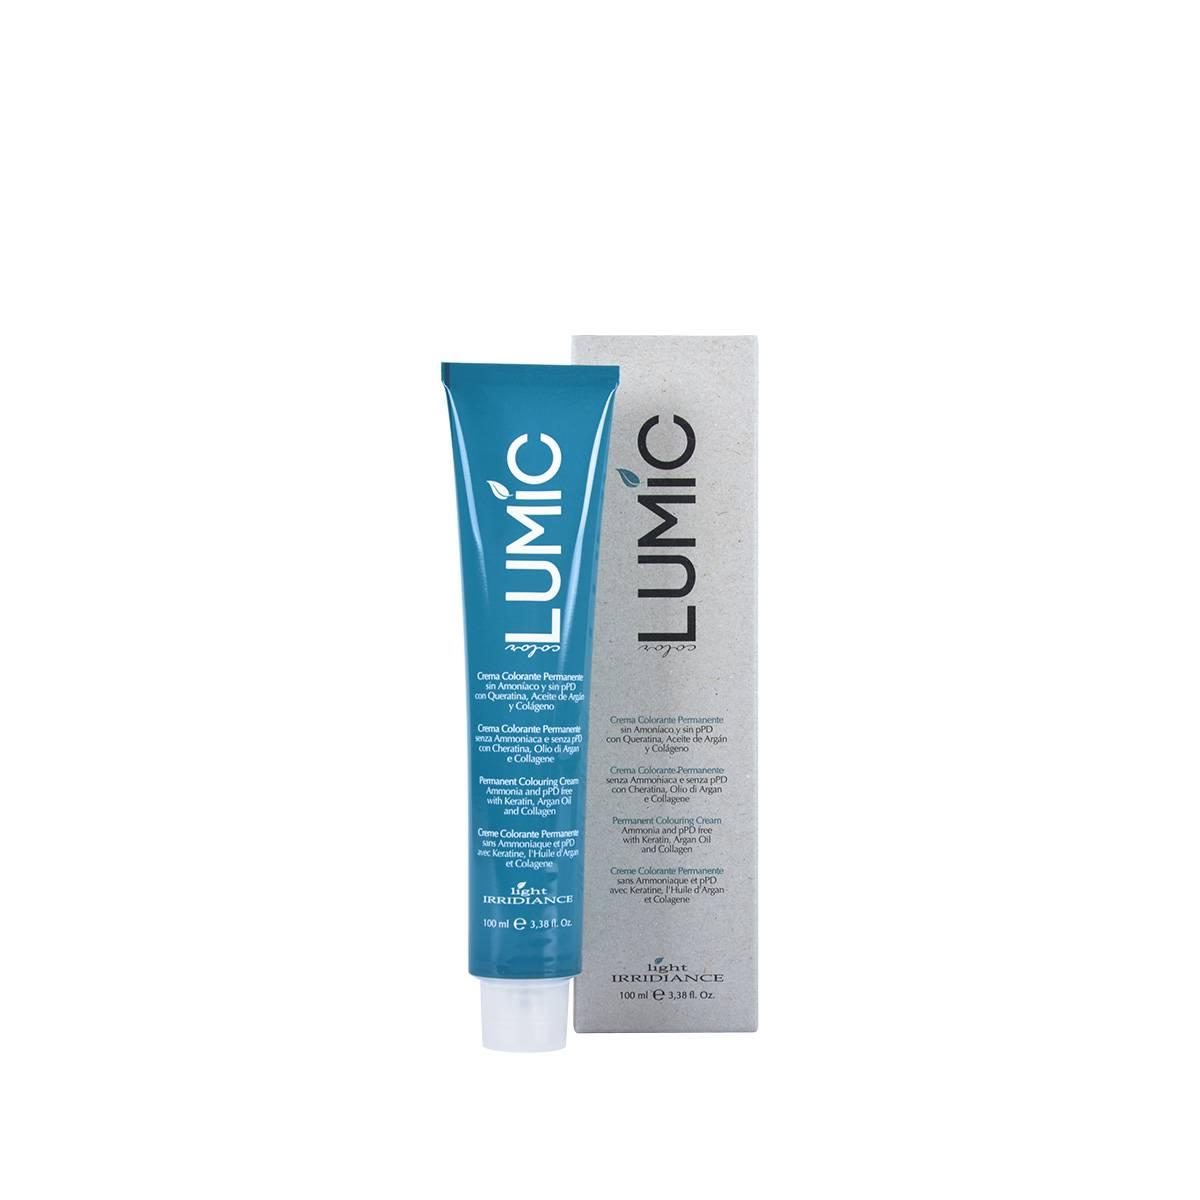 Lumic Crema Colore 100ml Biondo Scuro Dorato